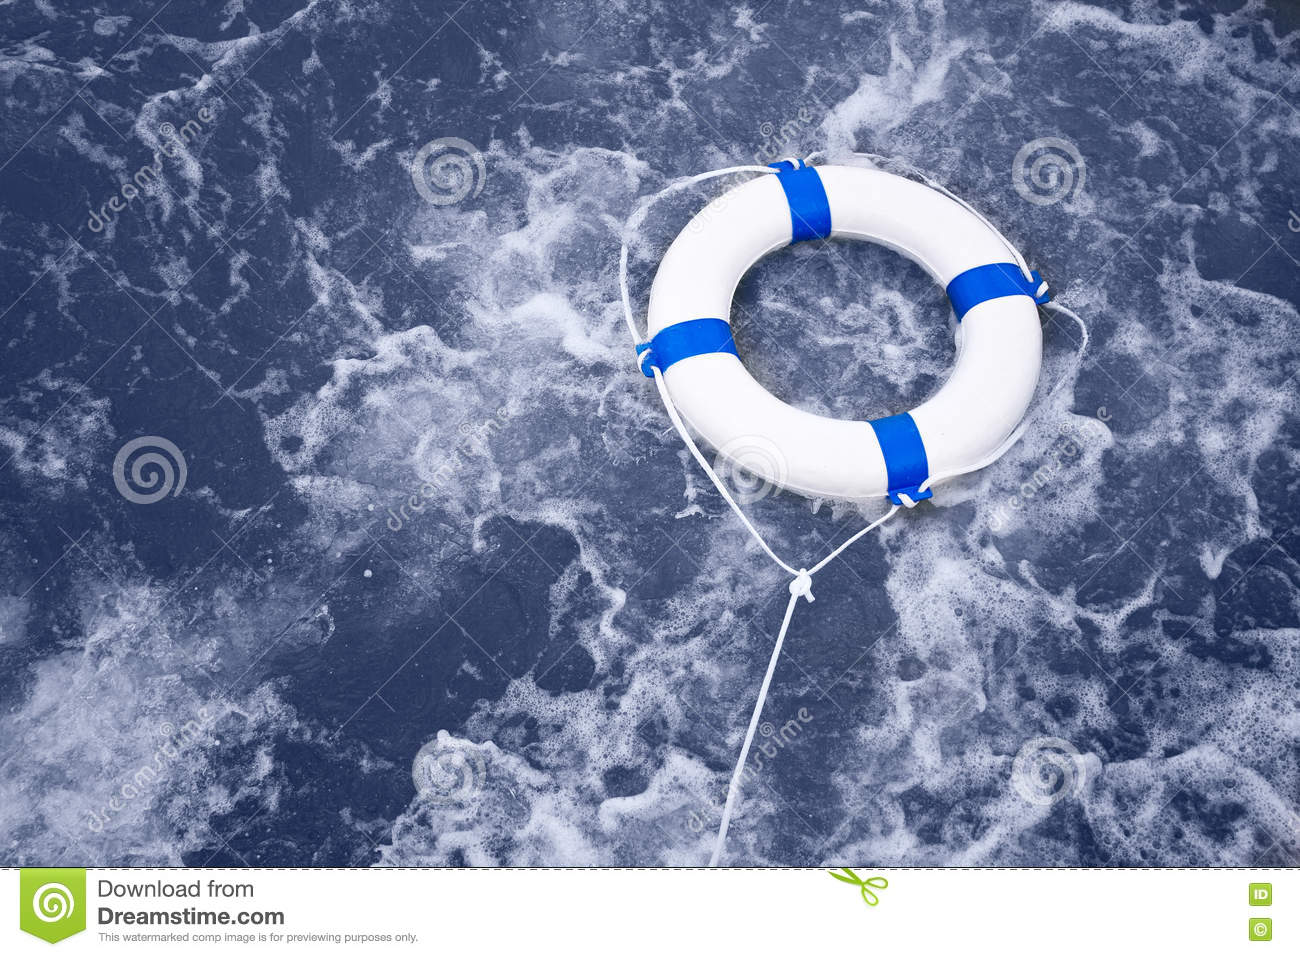 Lifebuoy, lifebelt, life saver rescue in a ocean storm full of f